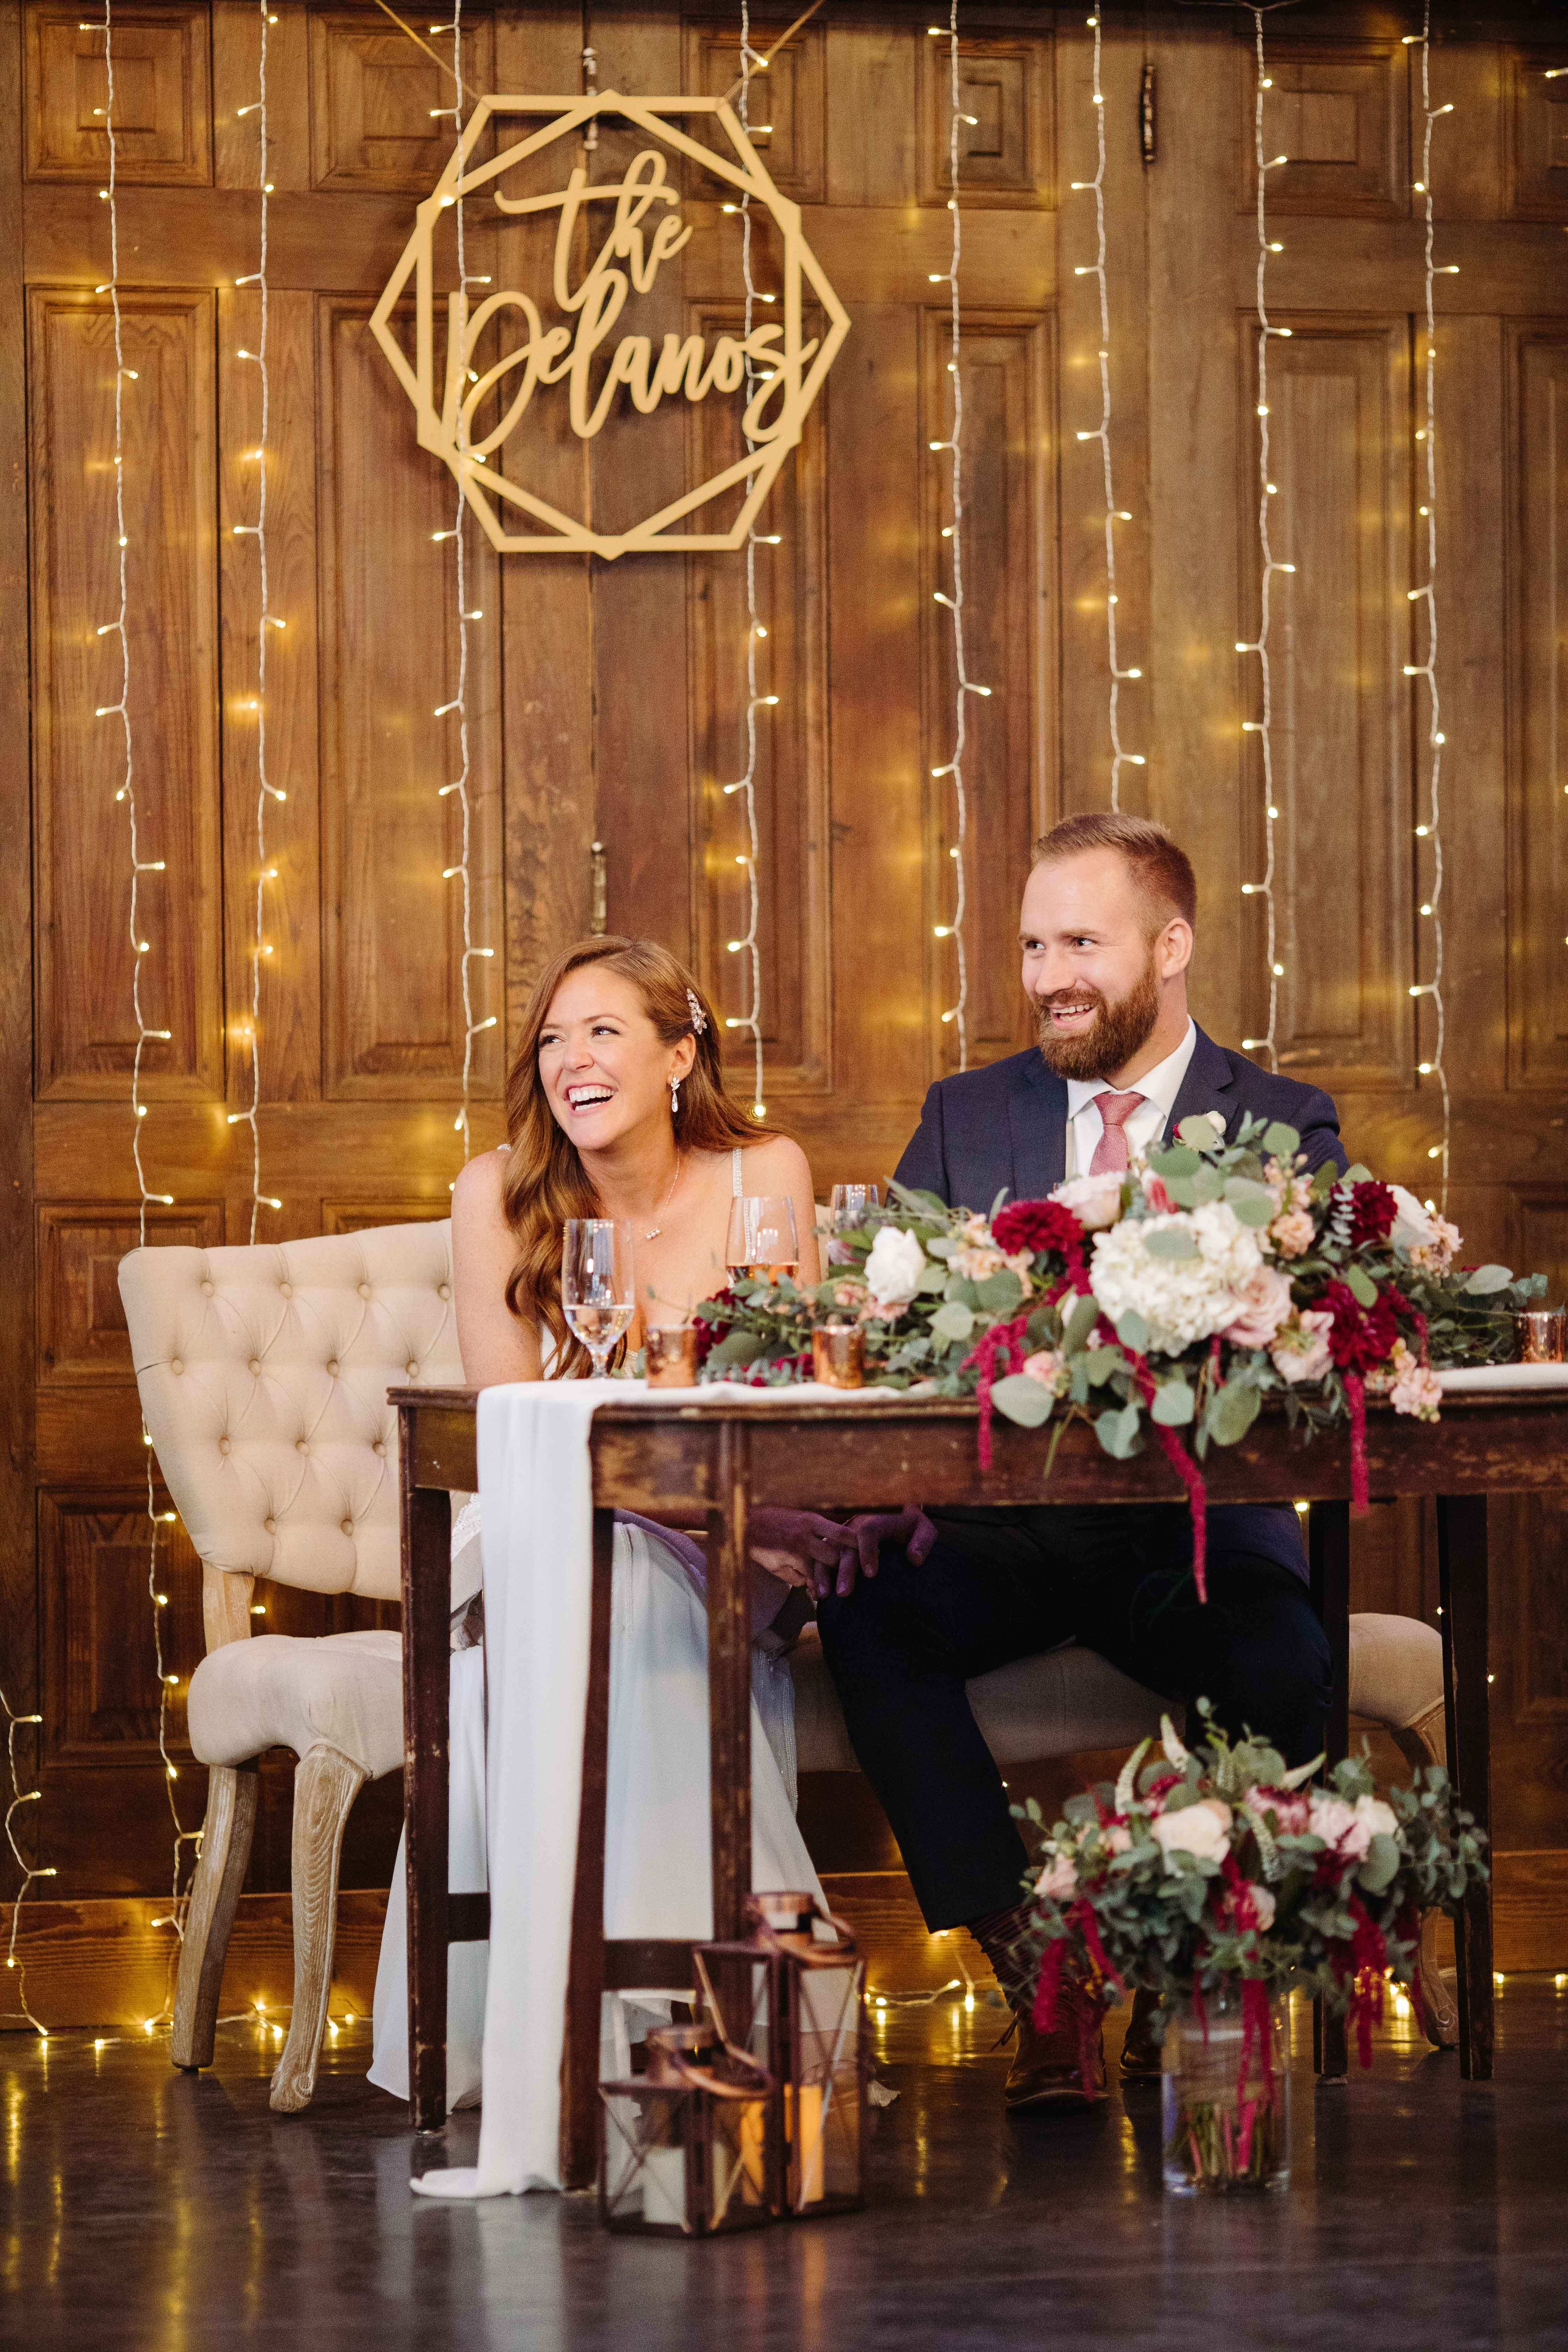 Couple at wedding table with love lies bleeding centerpieces - photo by Cameron Zegers Photography